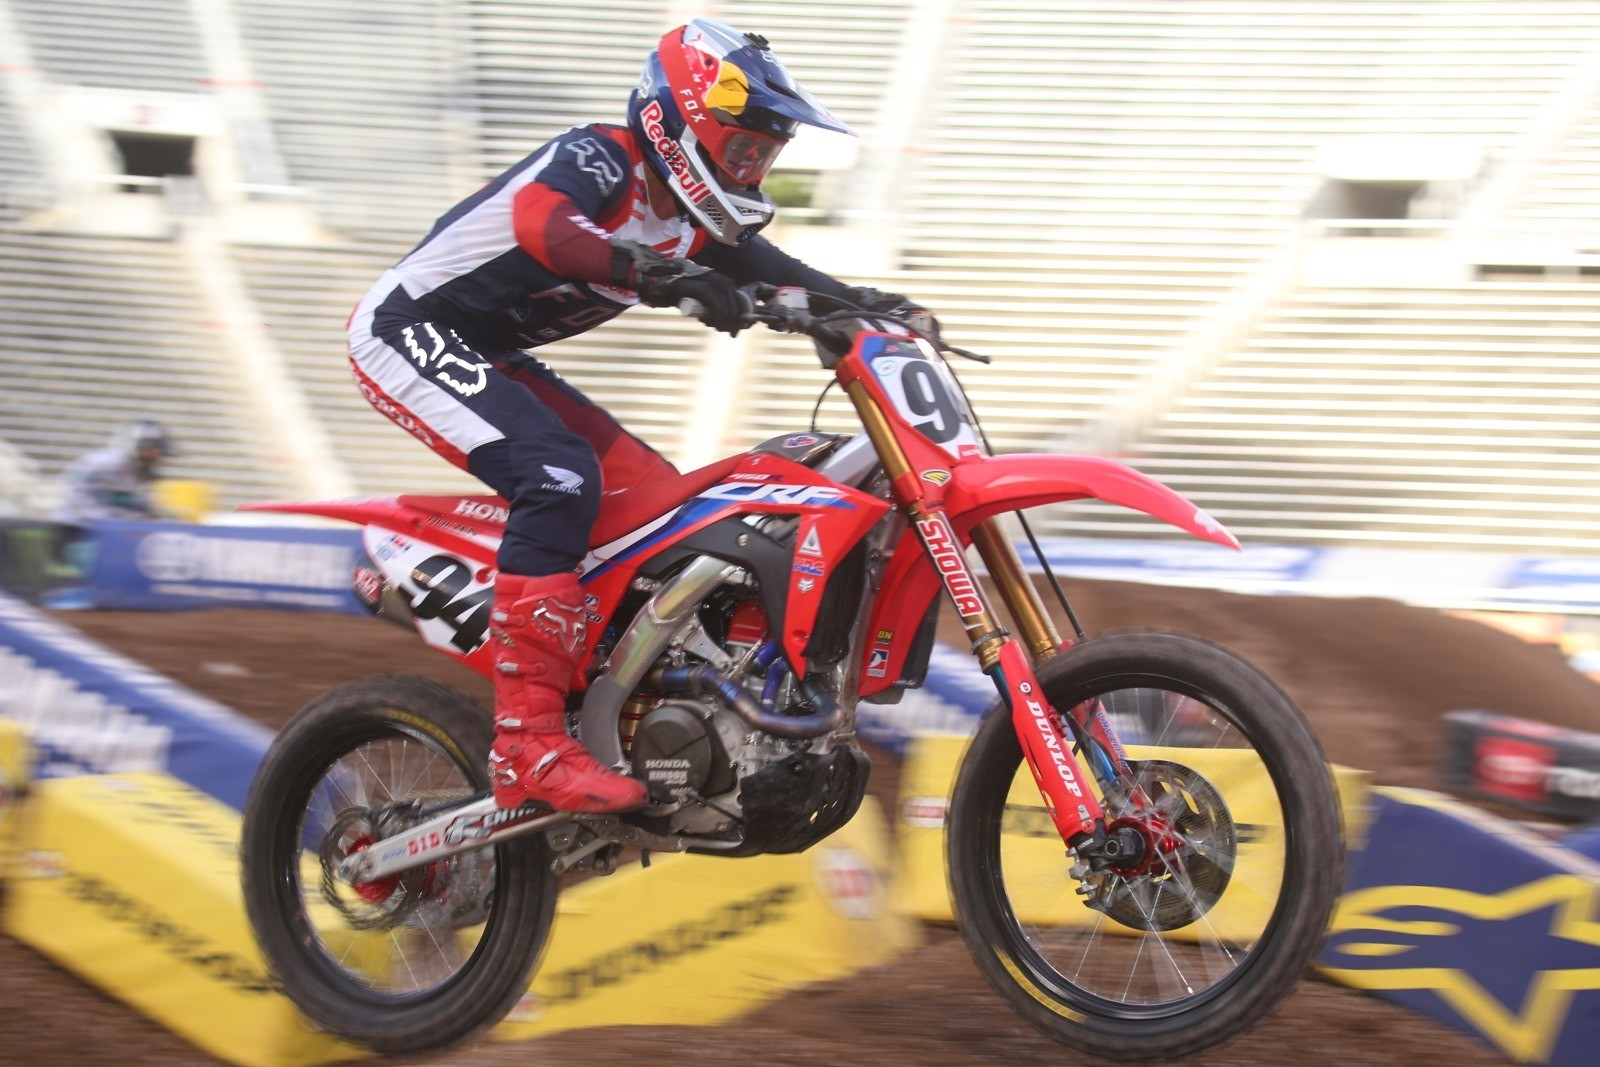 Ken Roczen claimed the Main Event win.